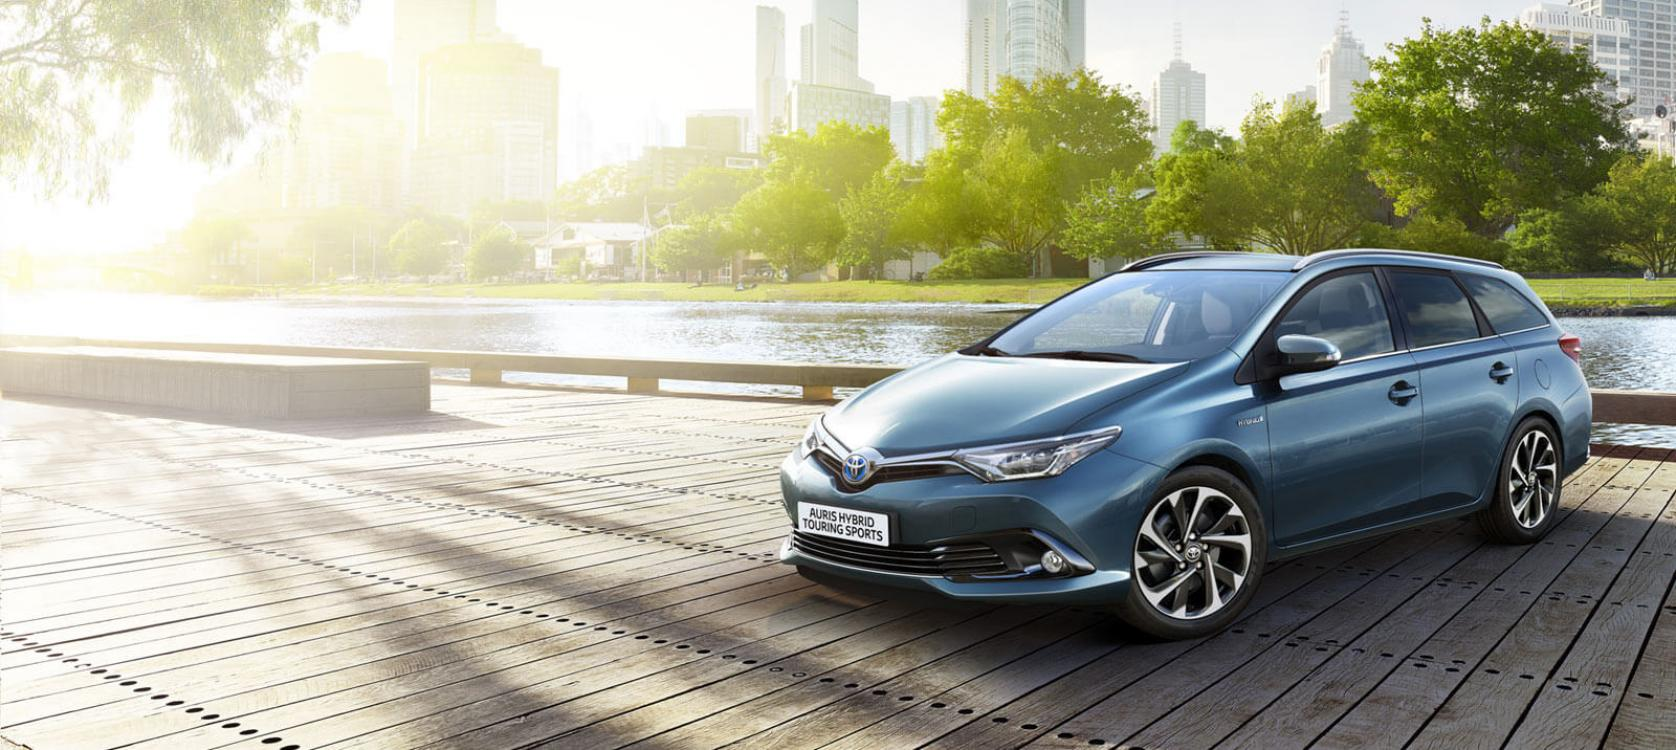 auris touring sports models features charles hurst toyota belfast. Black Bedroom Furniture Sets. Home Design Ideas